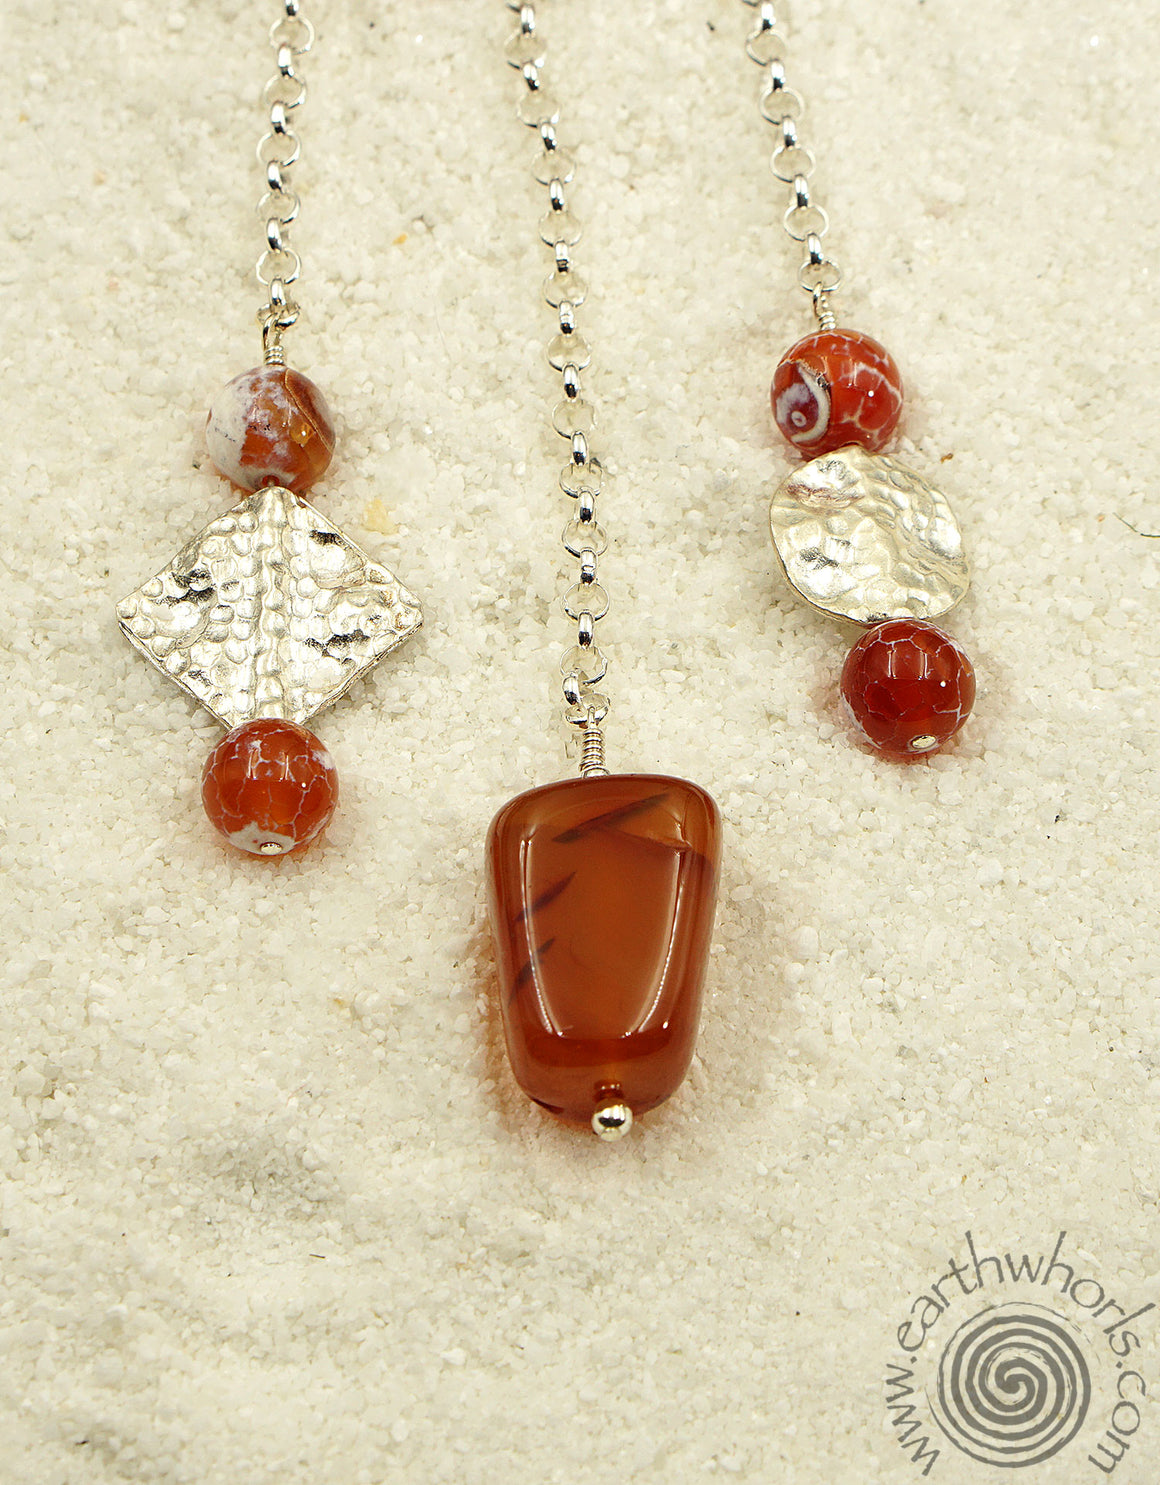 Fire Agate & Sterling Silver Multi Pendant Design Necklace - EarthWhorls, LLC